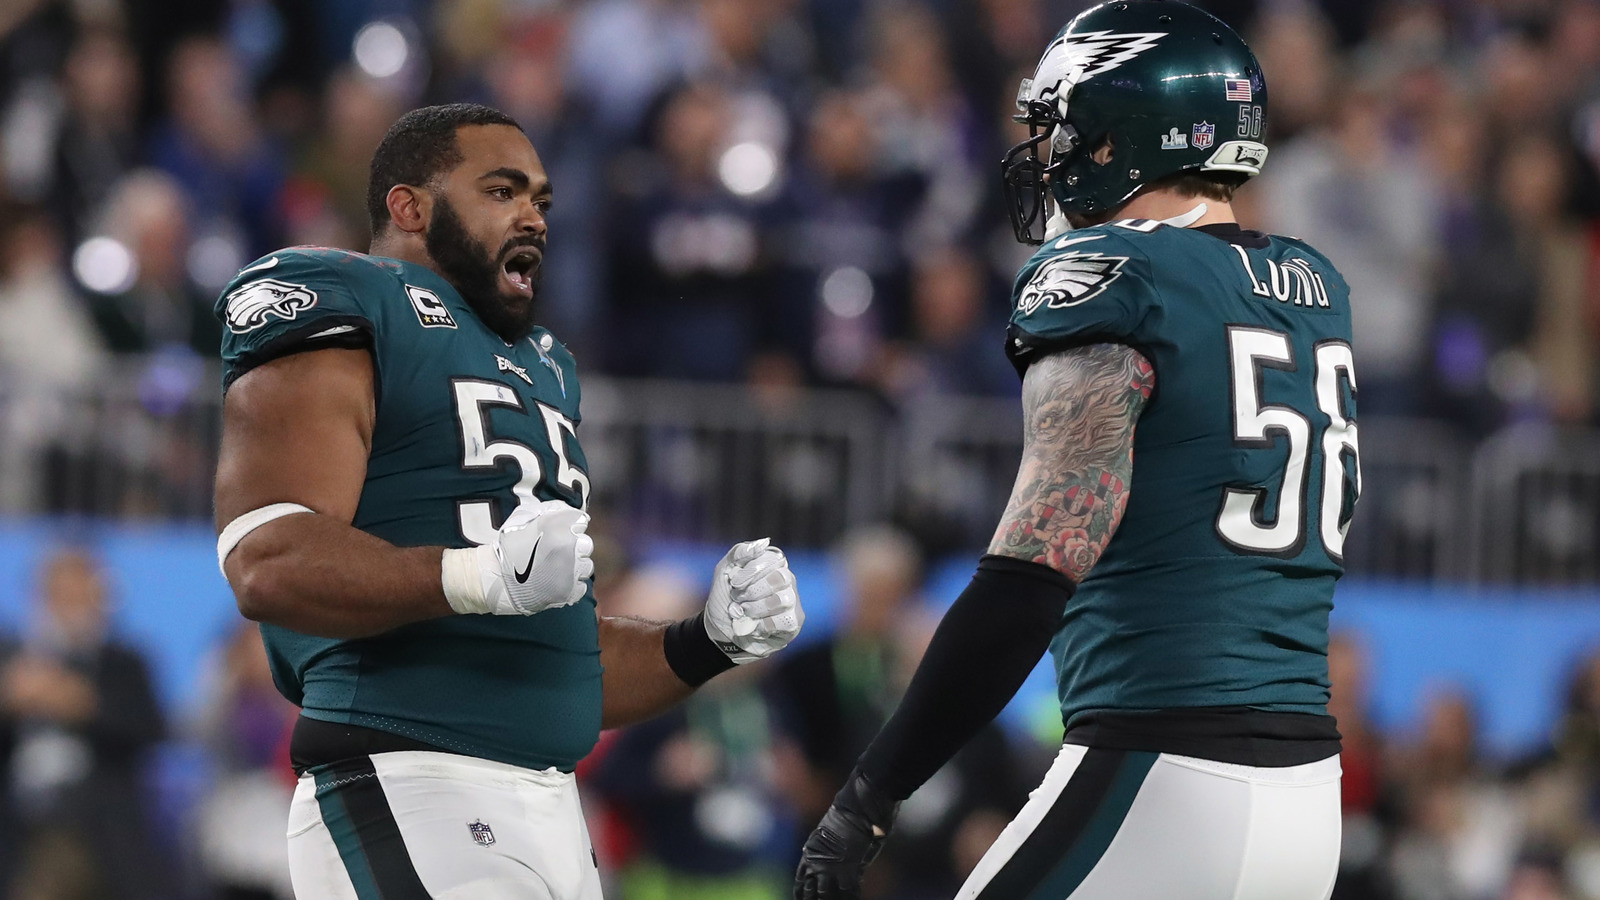 Eagles upset Patriots 41-33 to win Super Bowl